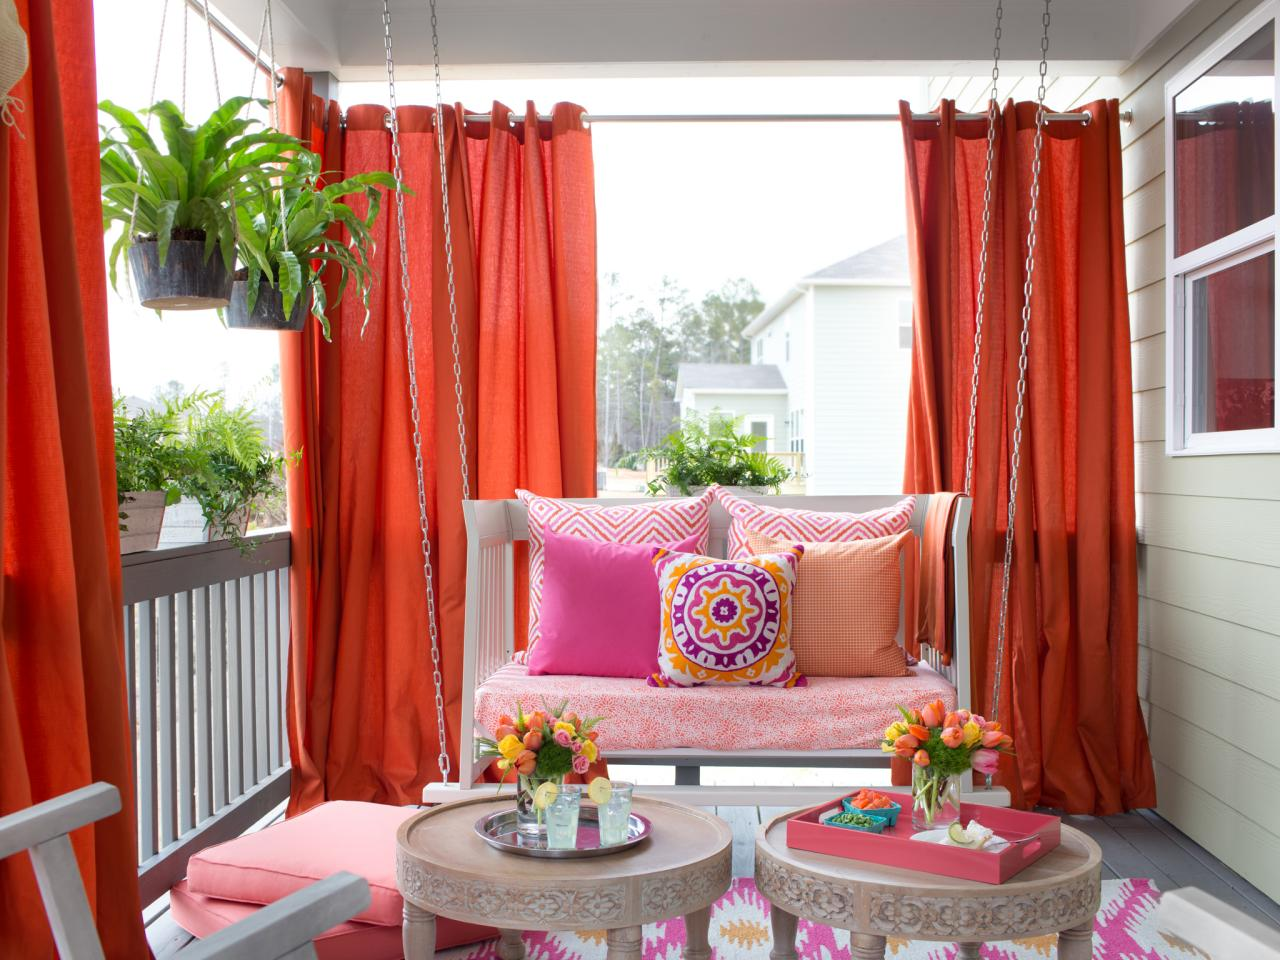 Patio decorating ideas for spring interior design styles for Patio deck decorating ideas